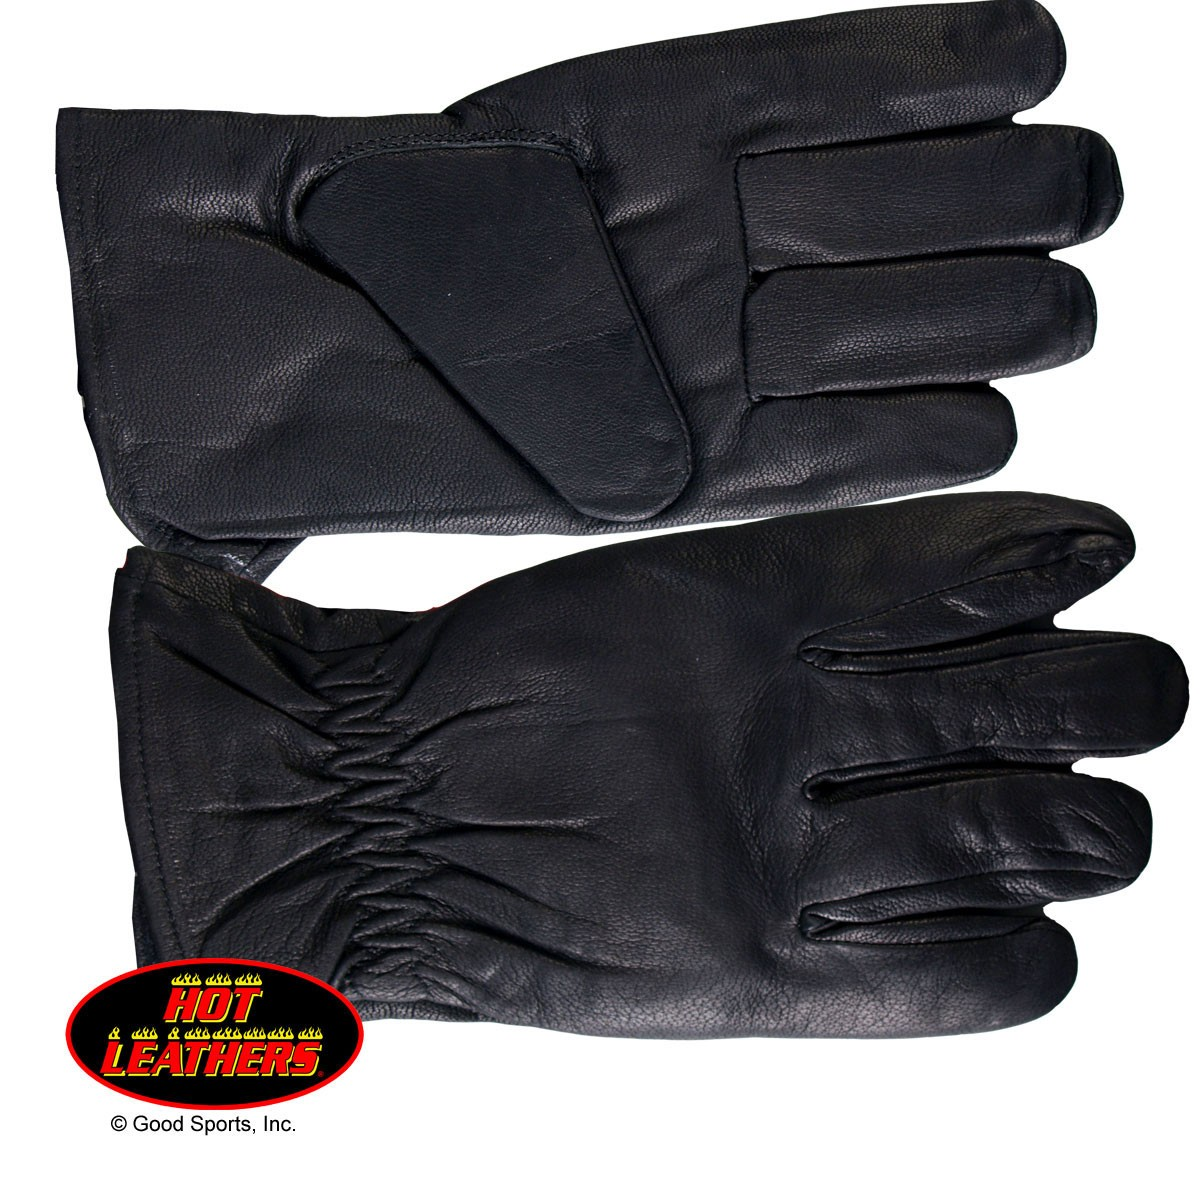 Hot Leathers Waterproof Unisex Leather Riding Glove